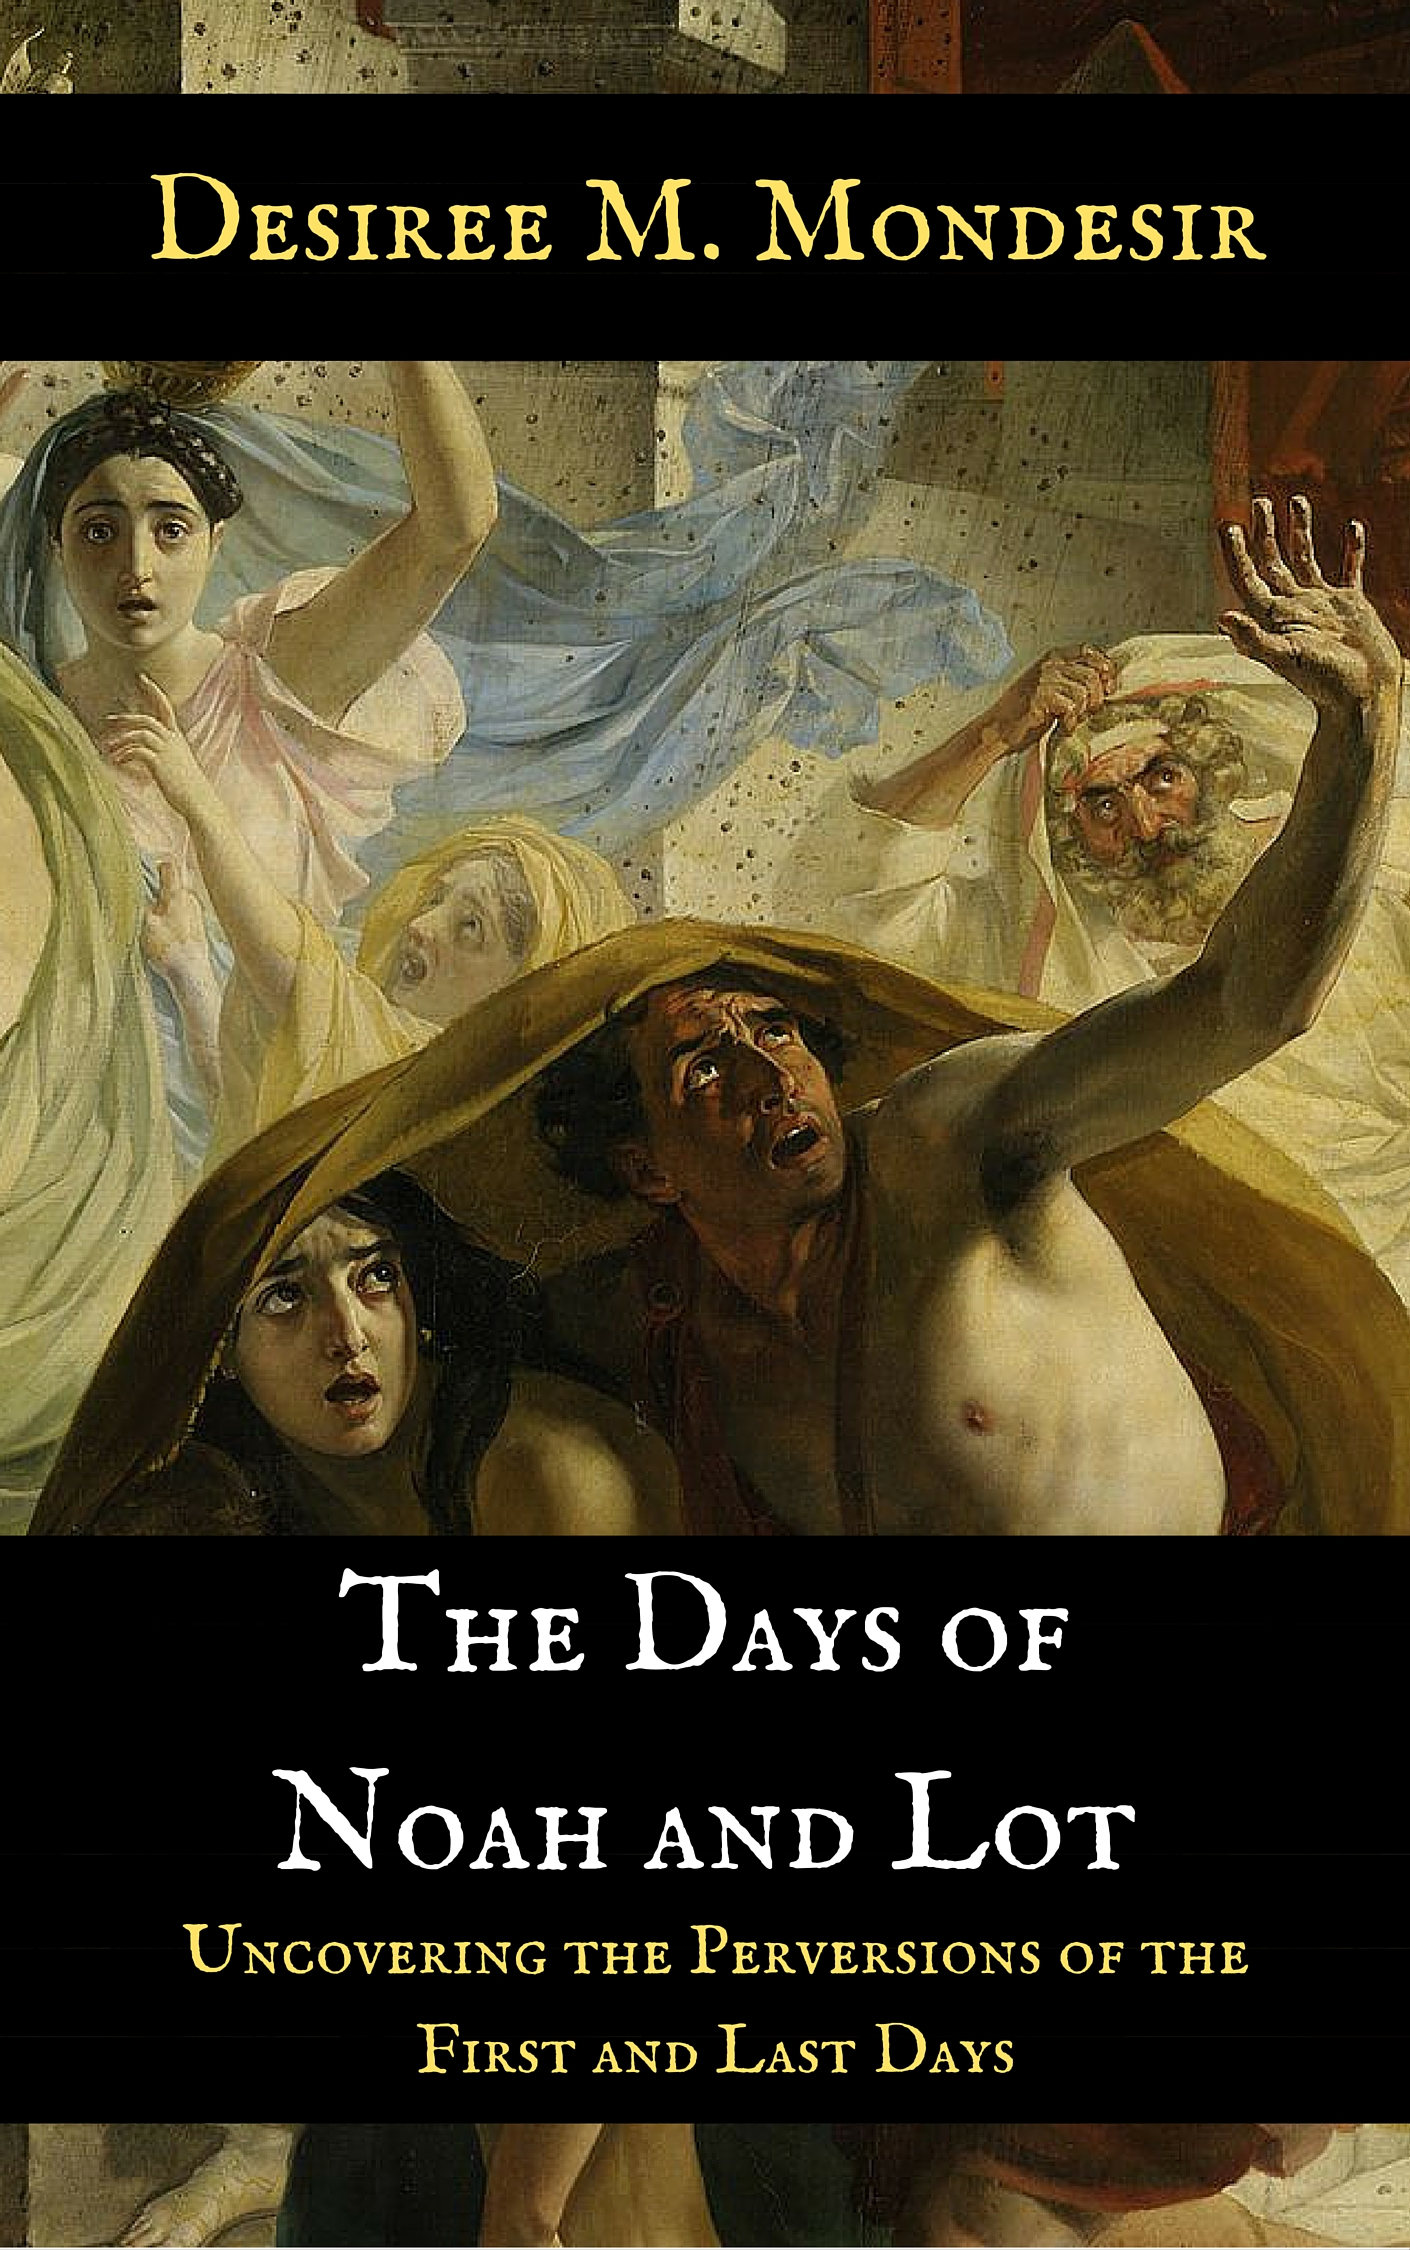 BUY THE DAYS OF NOAH AND LOT!